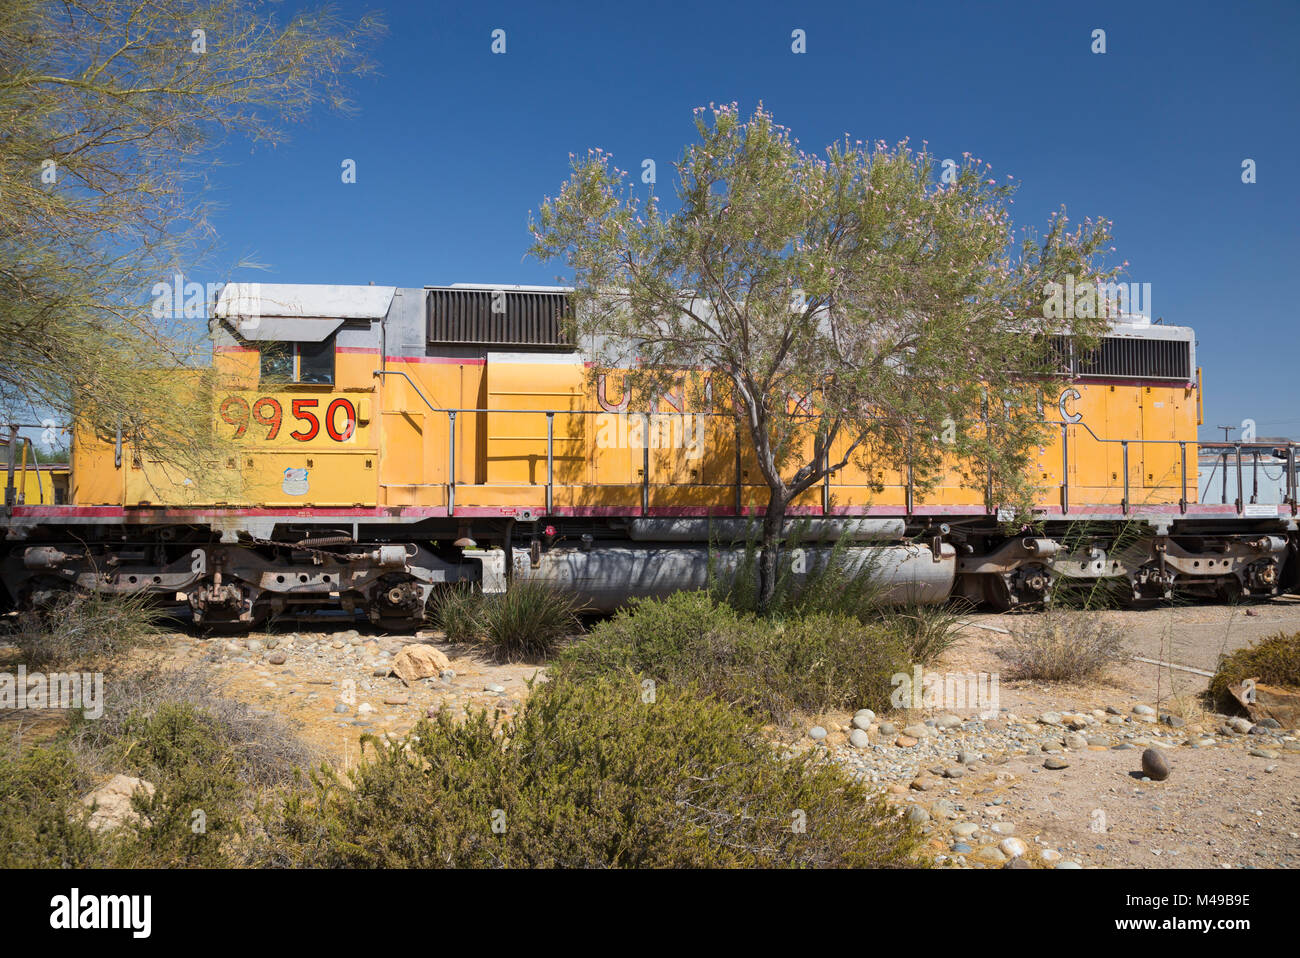 Union pacific railroad museum stock photos union pacific retired union pacific locomotive 9950 at the western america railroad museum barstow california biocorpaavc